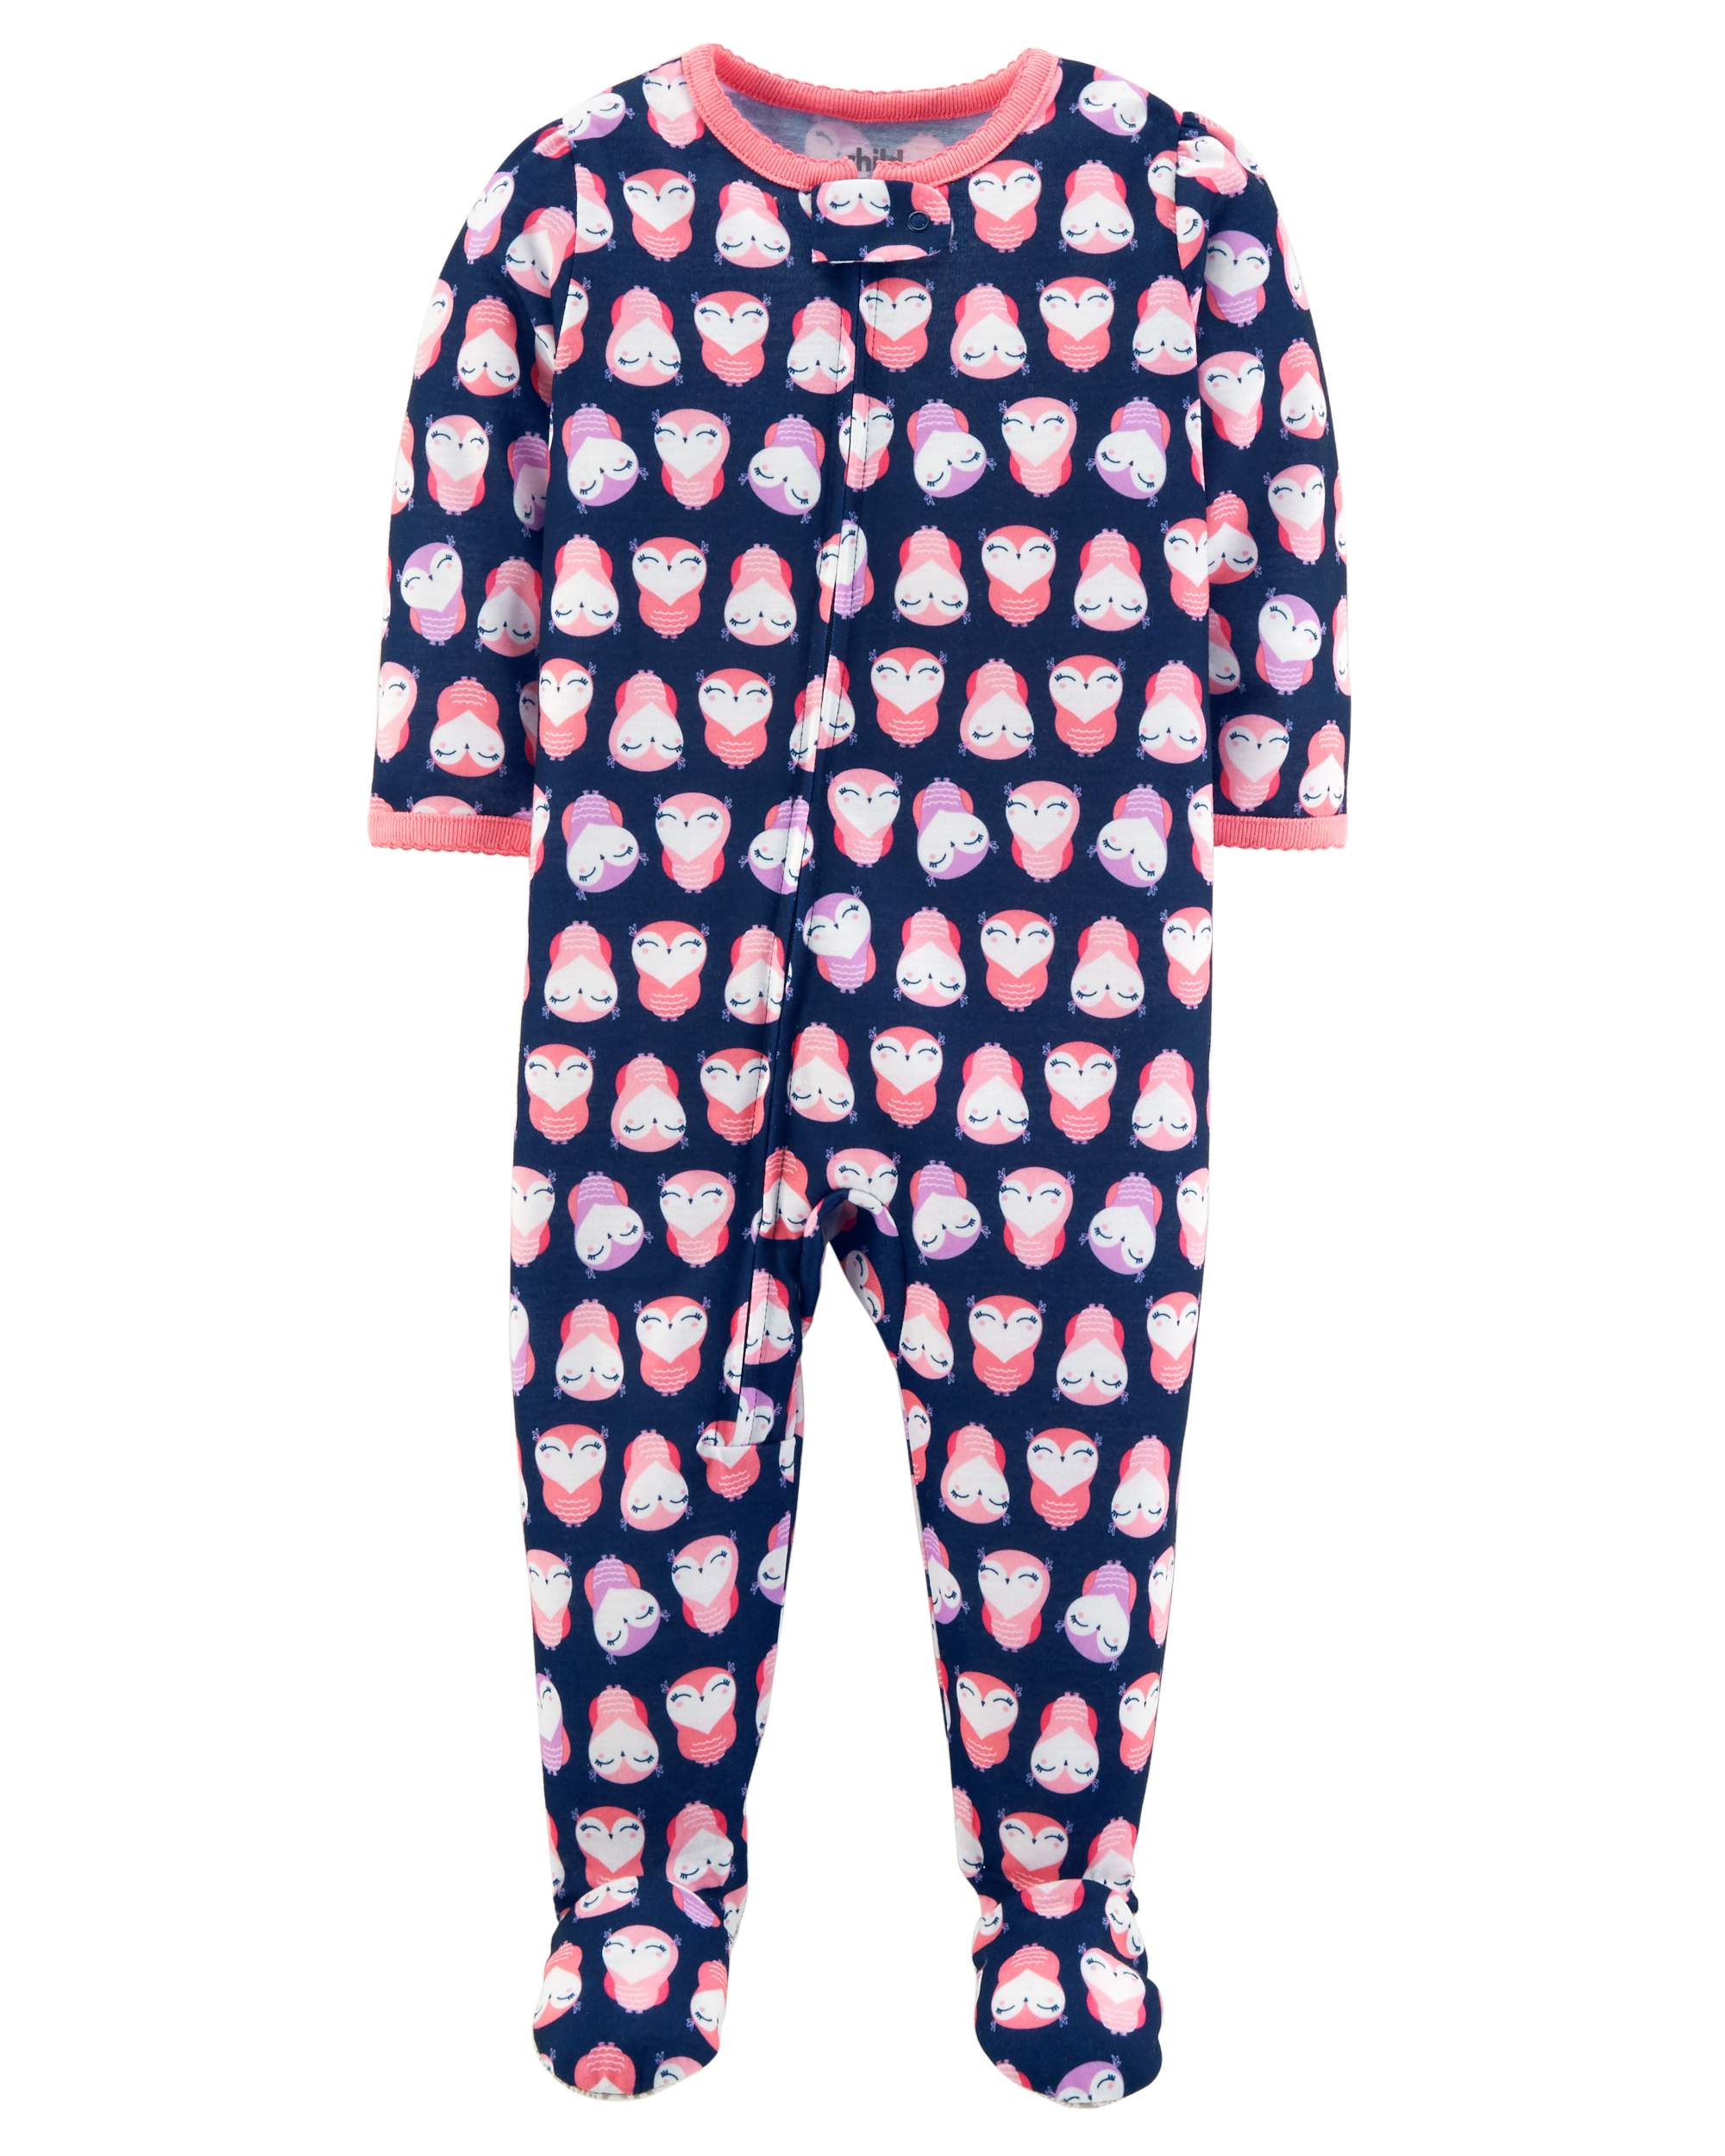 Toddler Girl One Piece Footed Pajamas